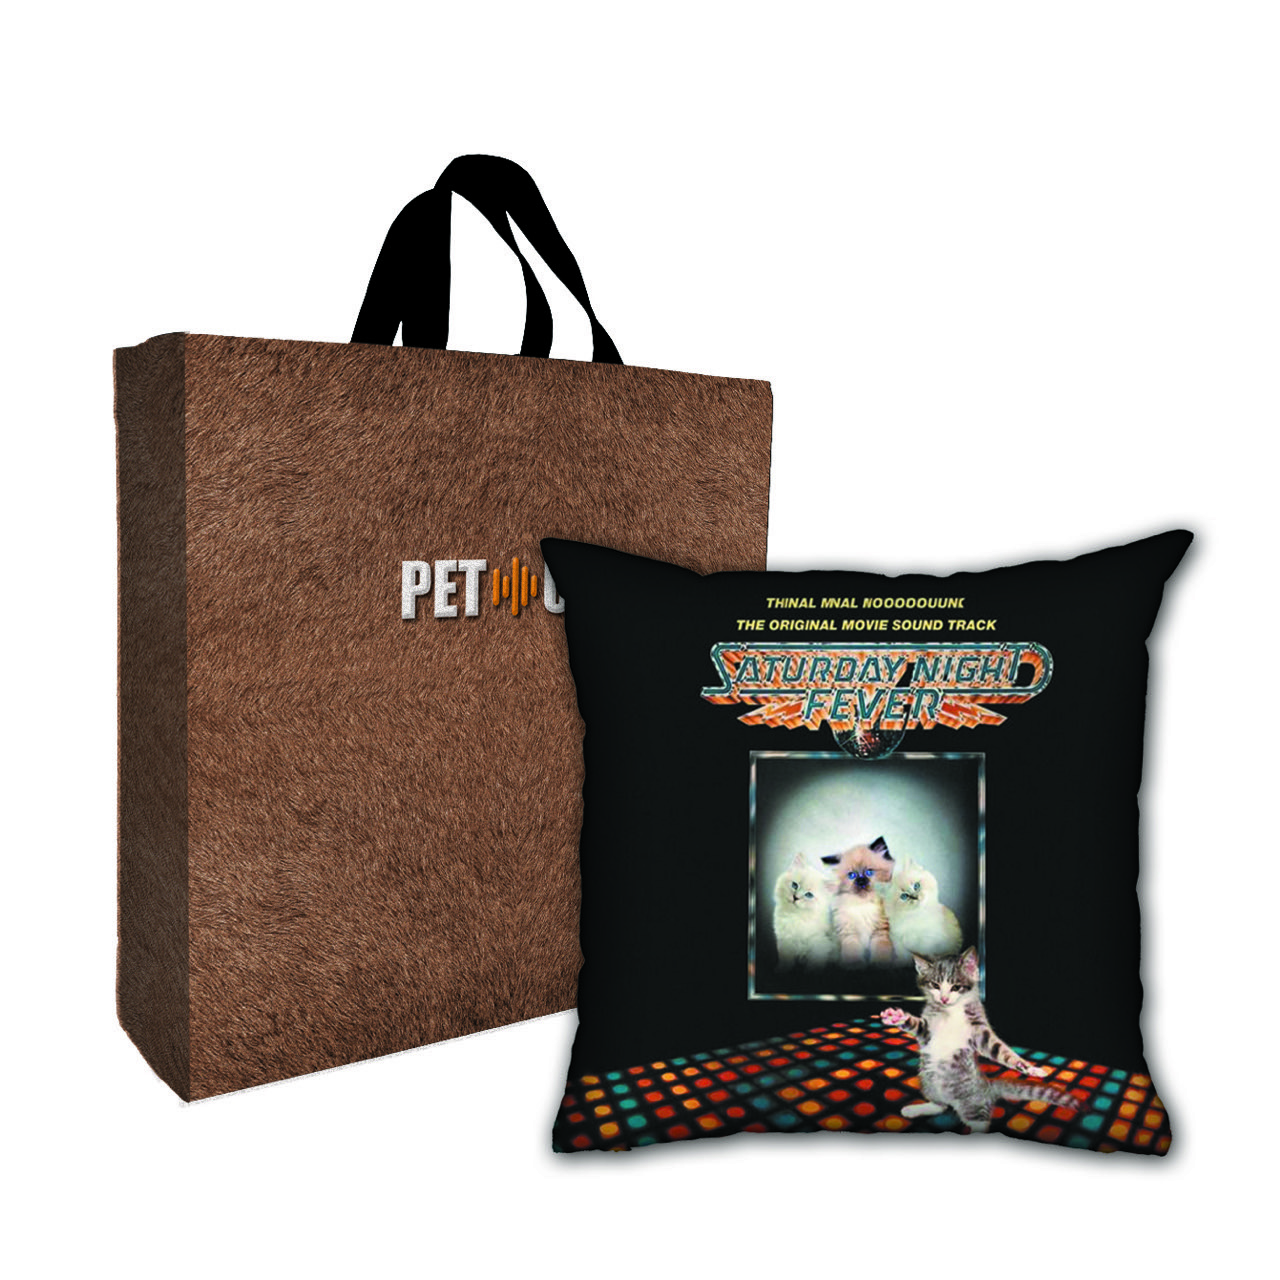 Kit Almofada & Sacola Bege Pet Use - Cat Fever - Gato